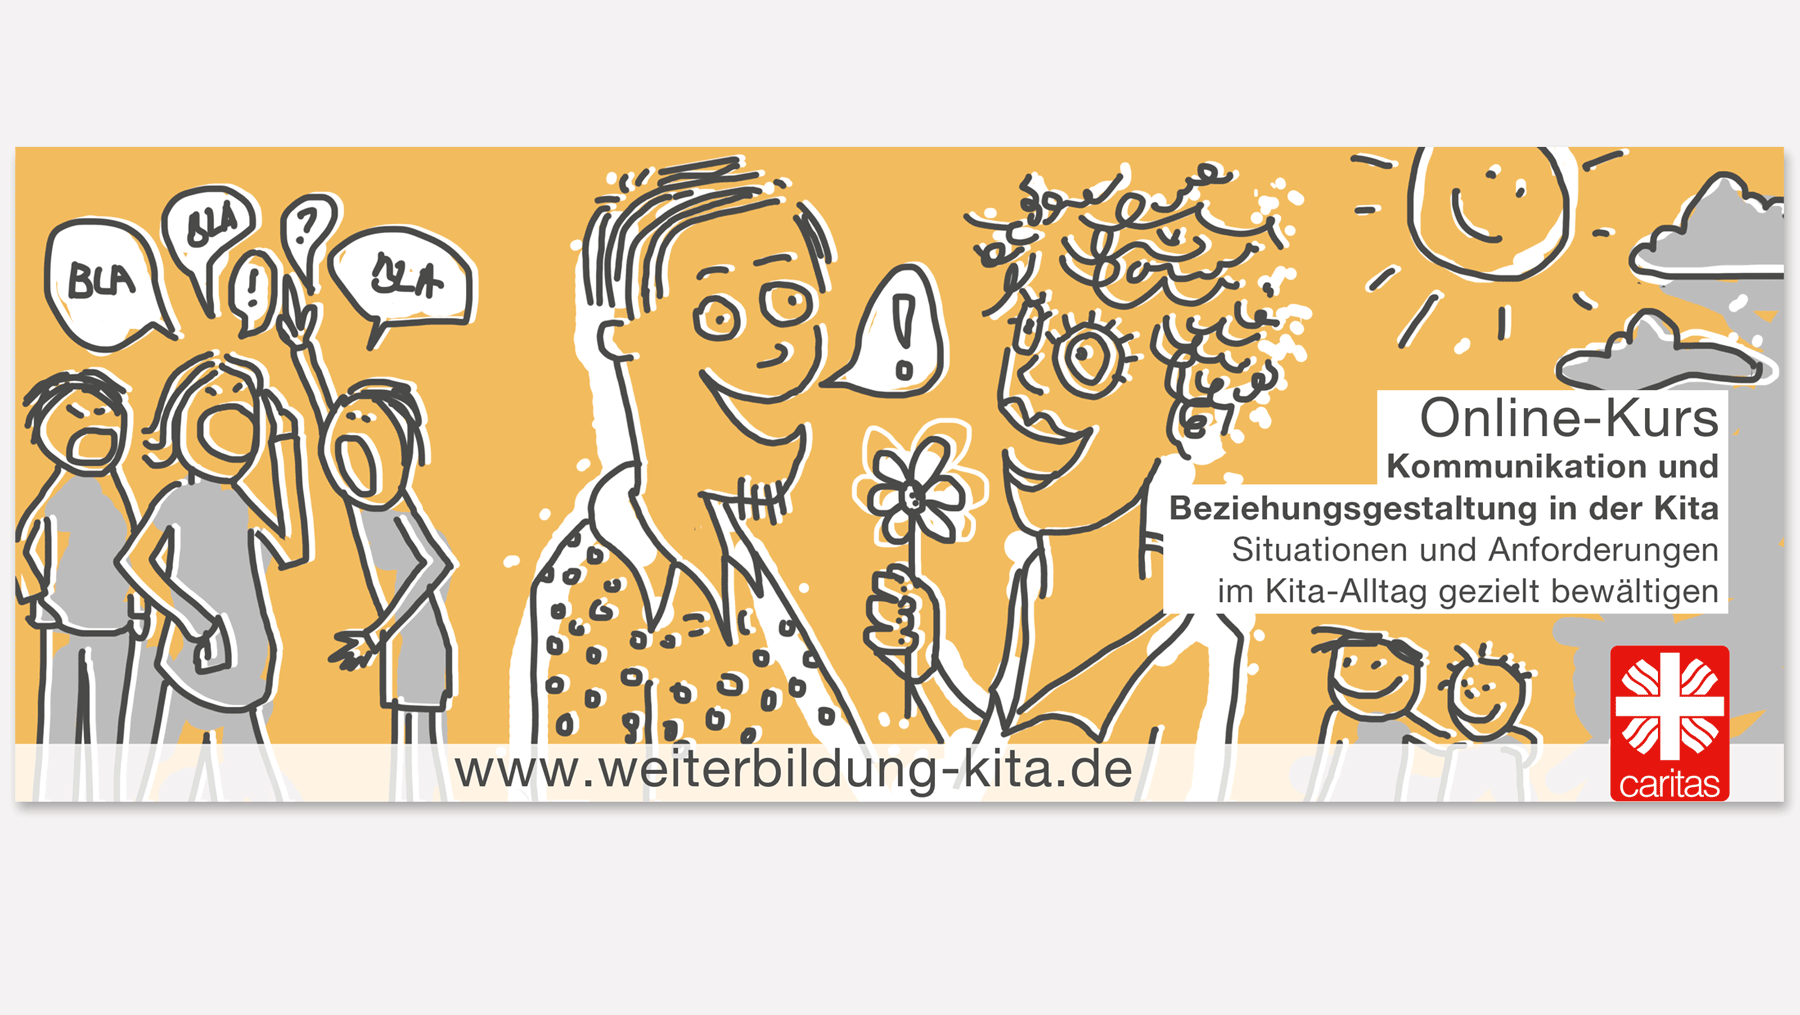 Caritas - Titelbild für Facebook Marketing Online Kurse Kommunikation